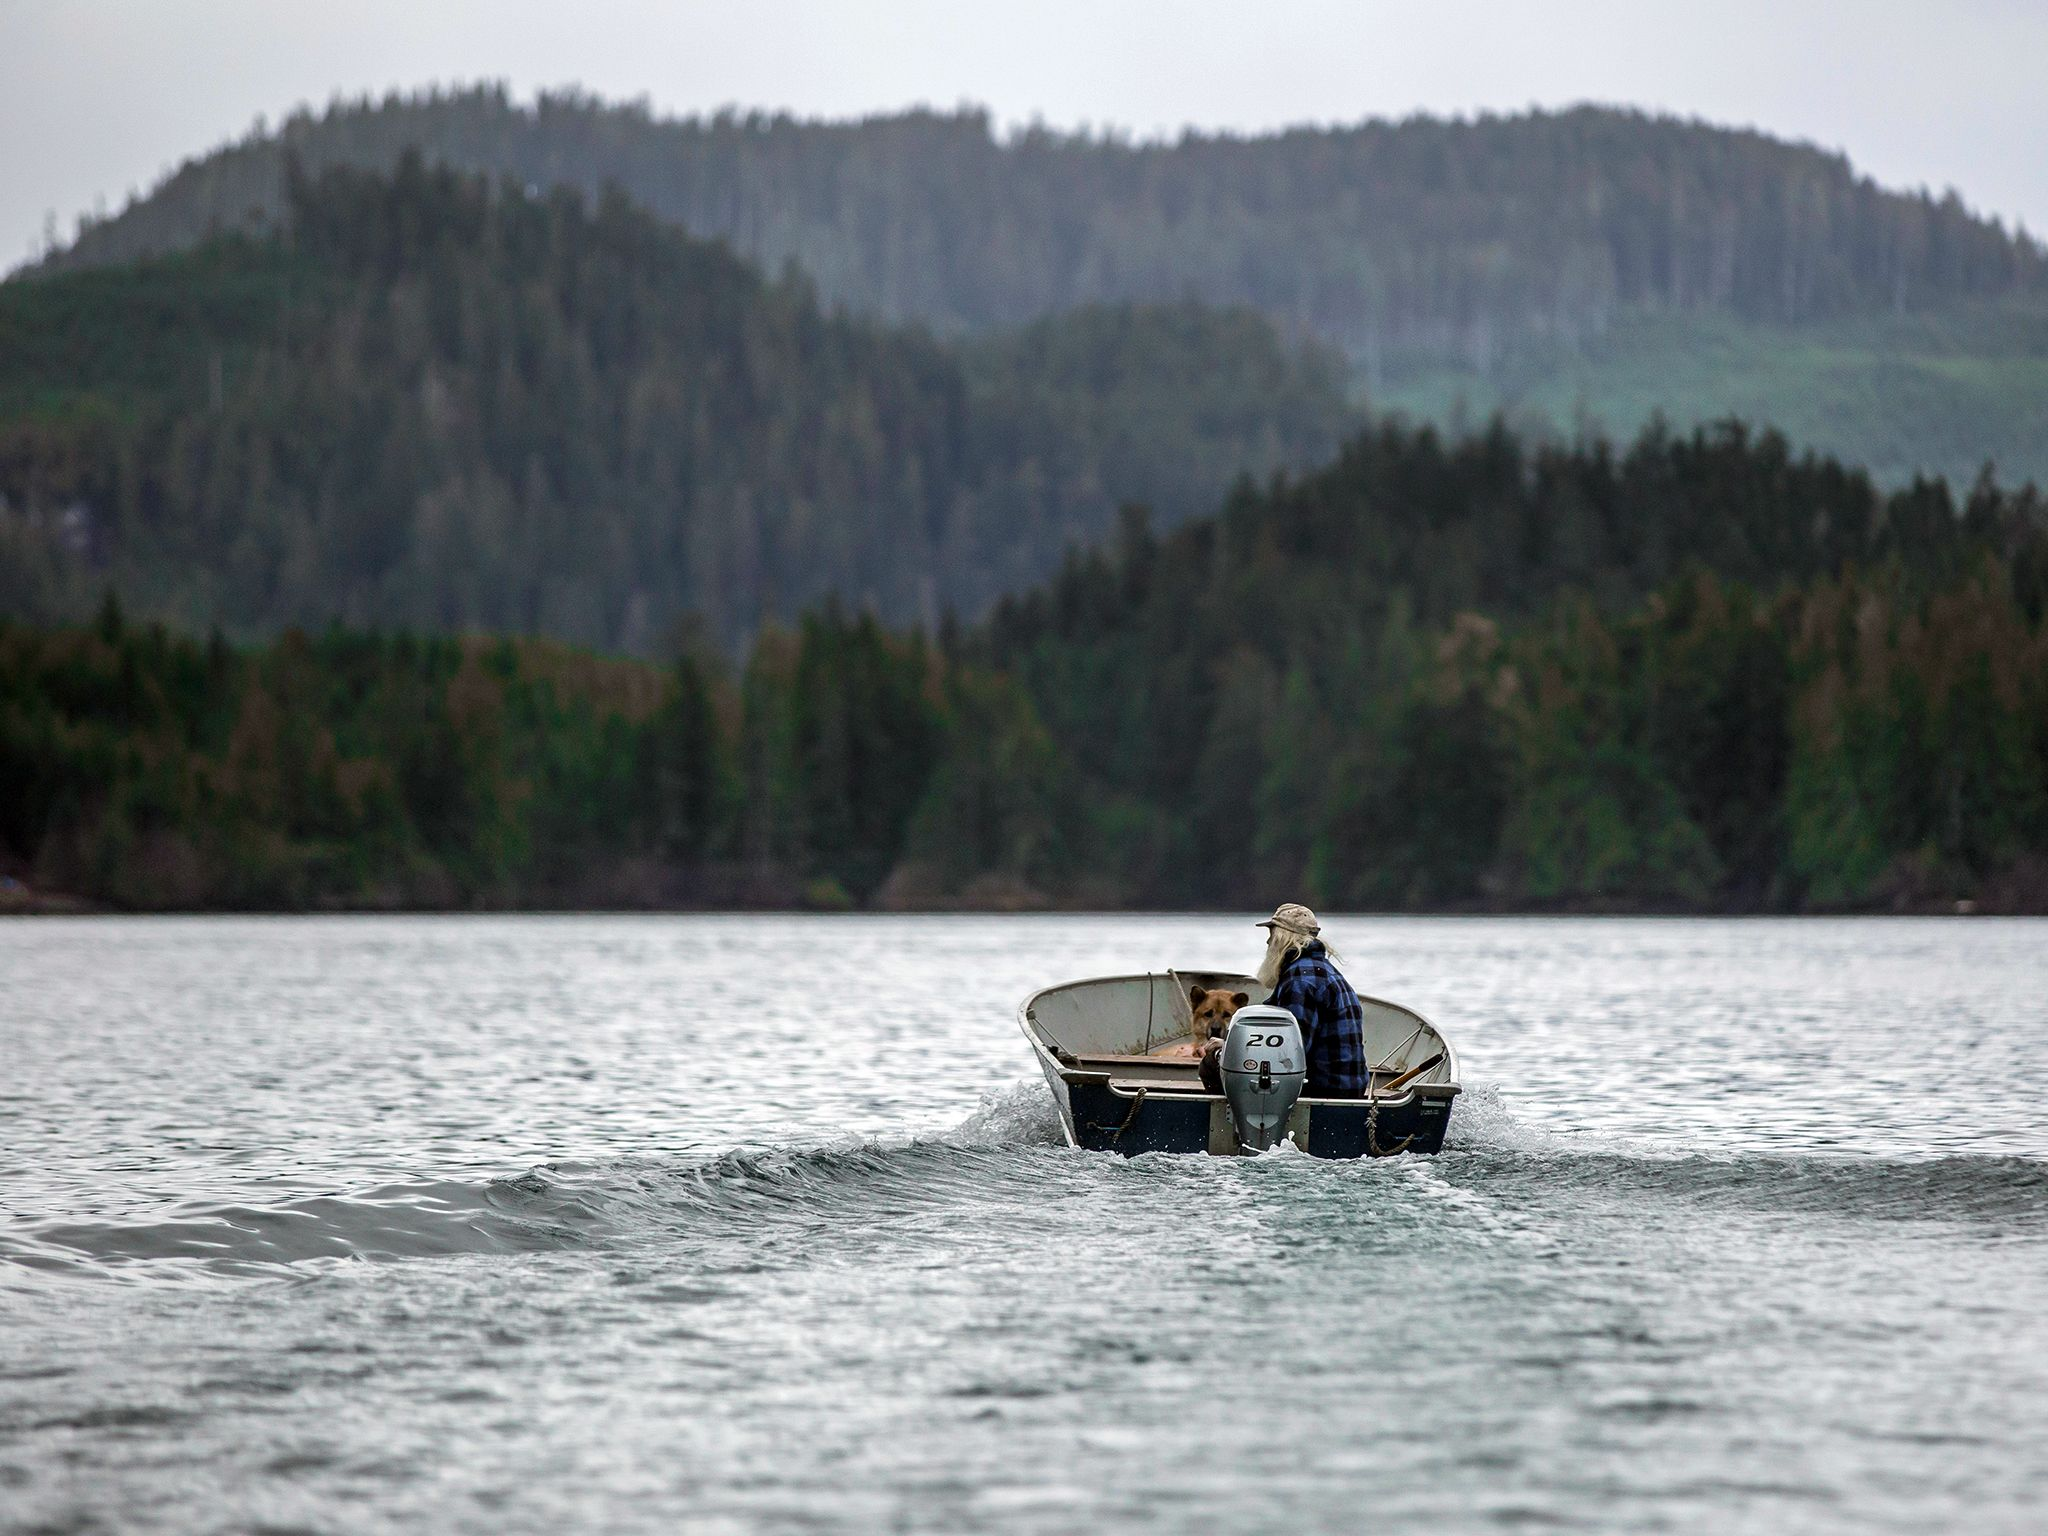 Port Protection, Alaska: Gary drives his boat to the place where he wants to forage for clams. Th... [Dagens foto - november 2015]